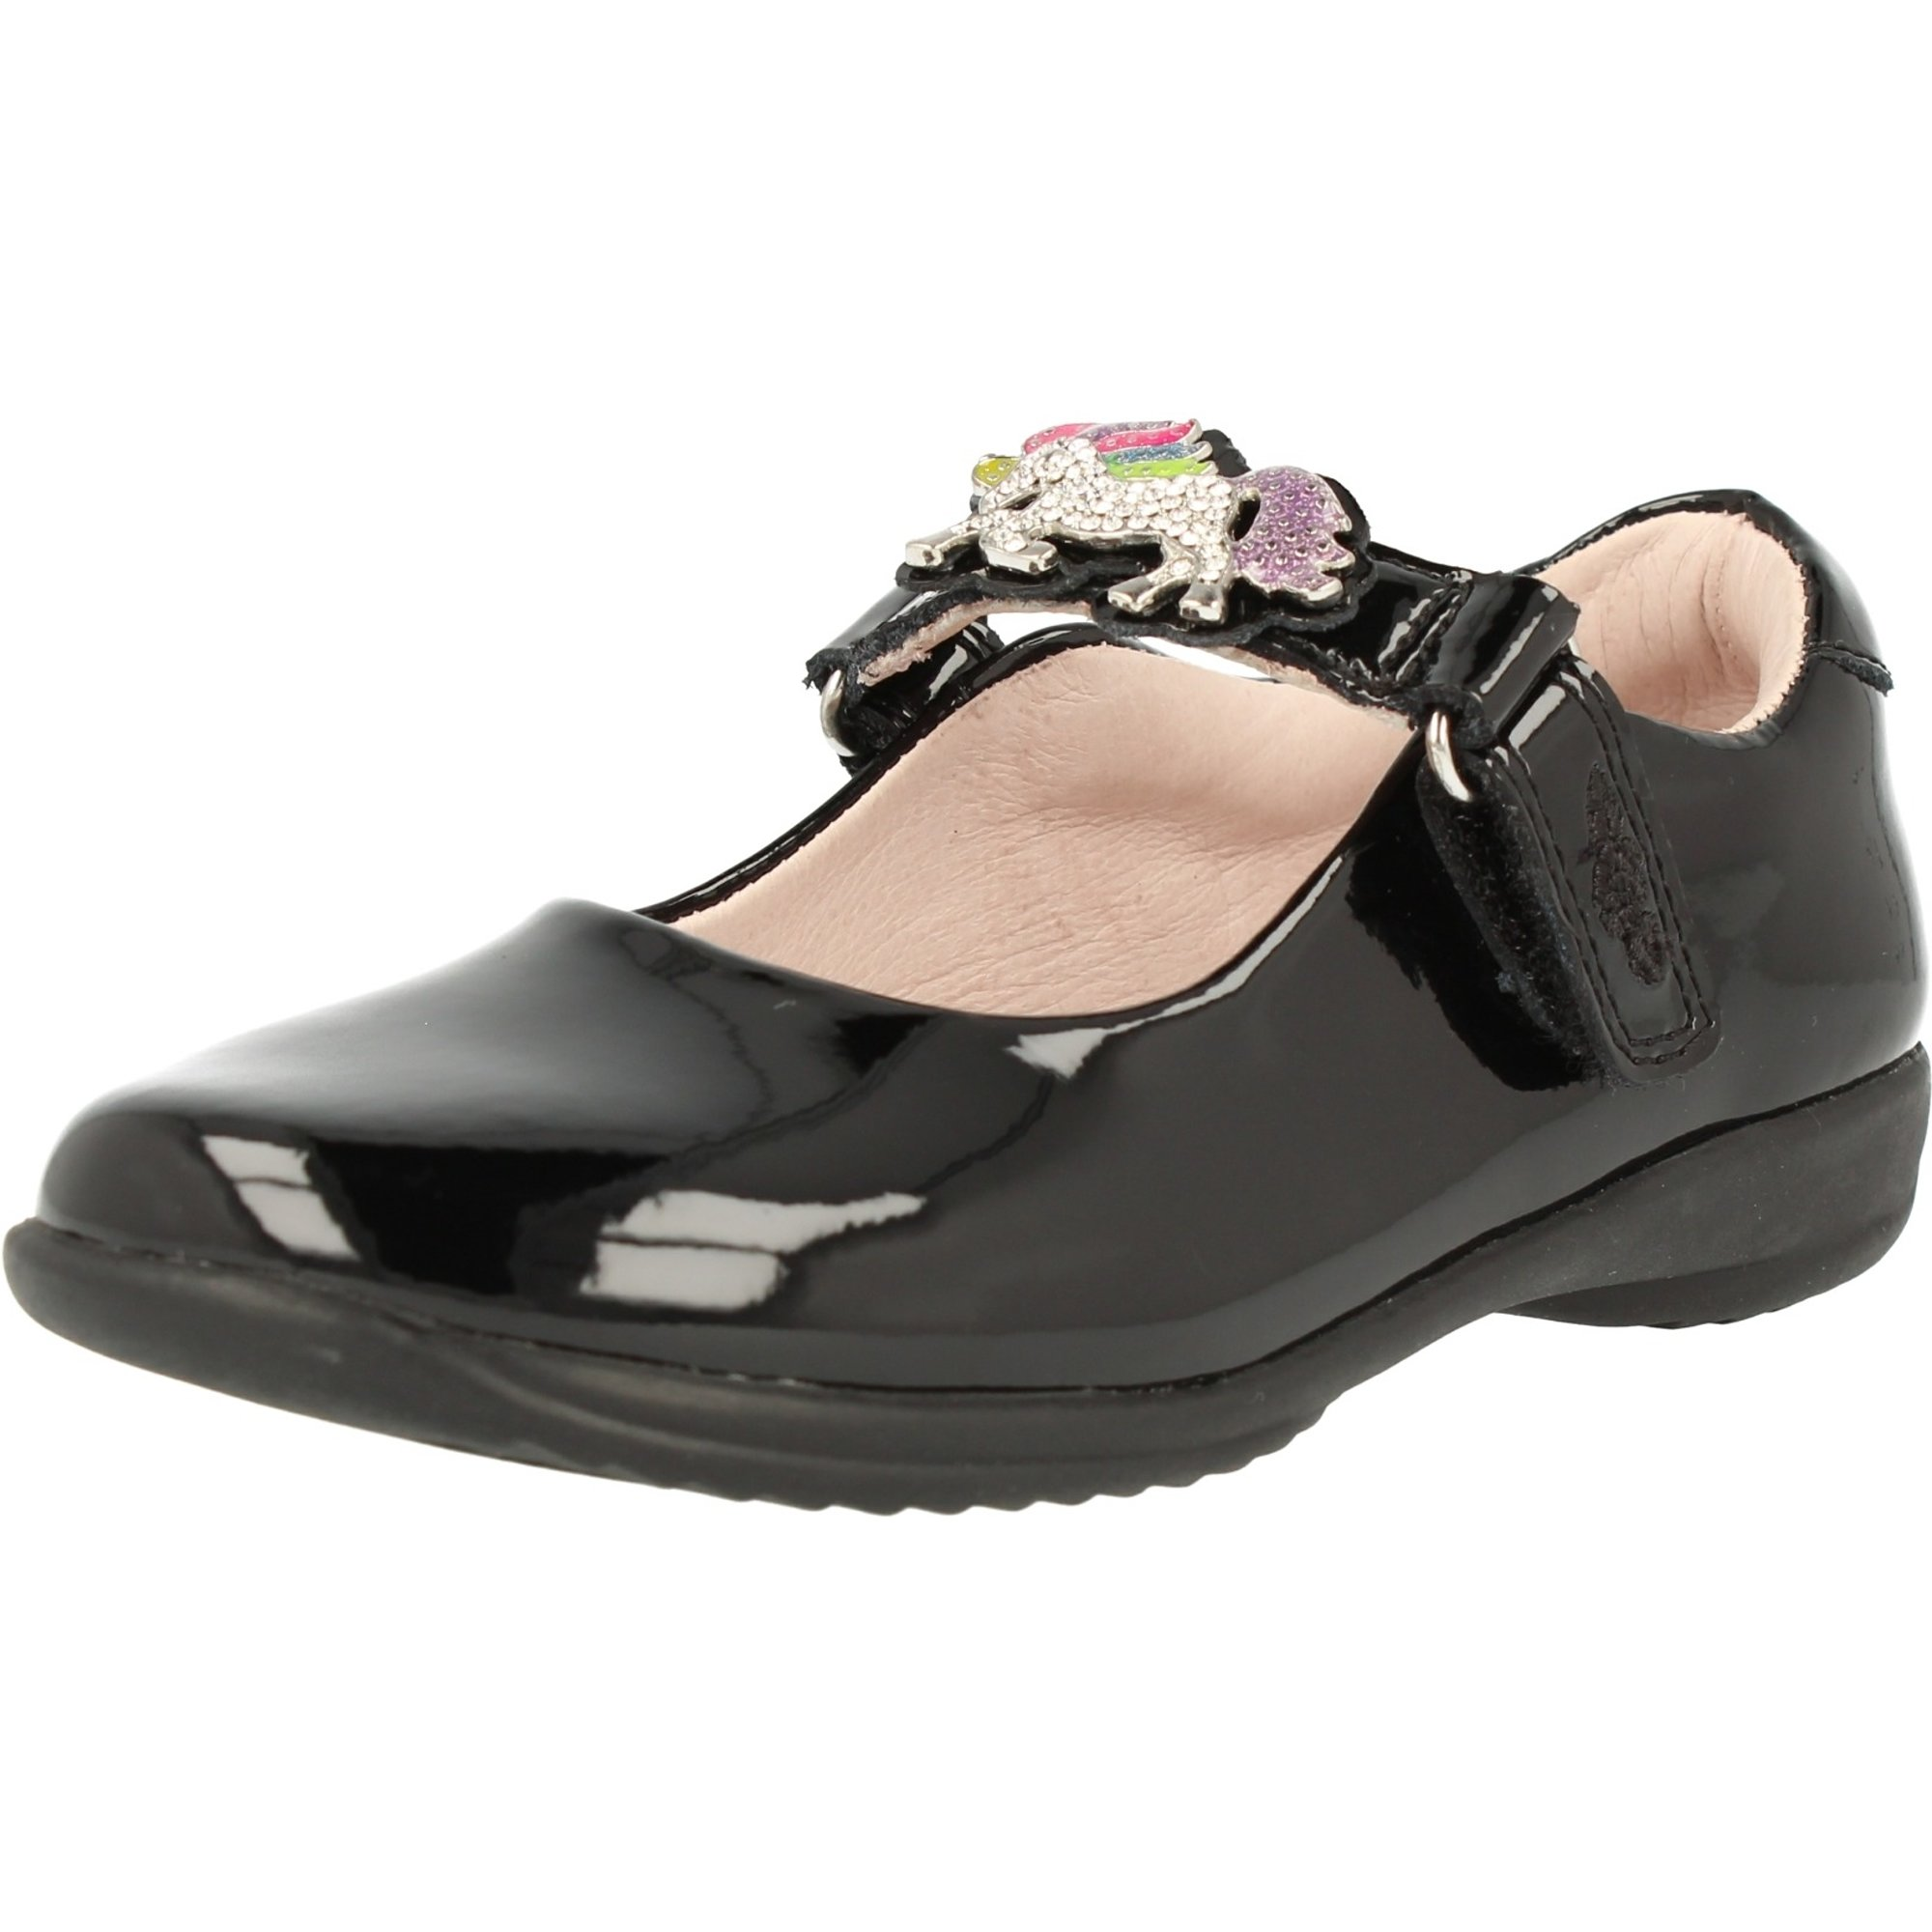 Lelli Kelly Blossom School Dolly Black Patent Infant